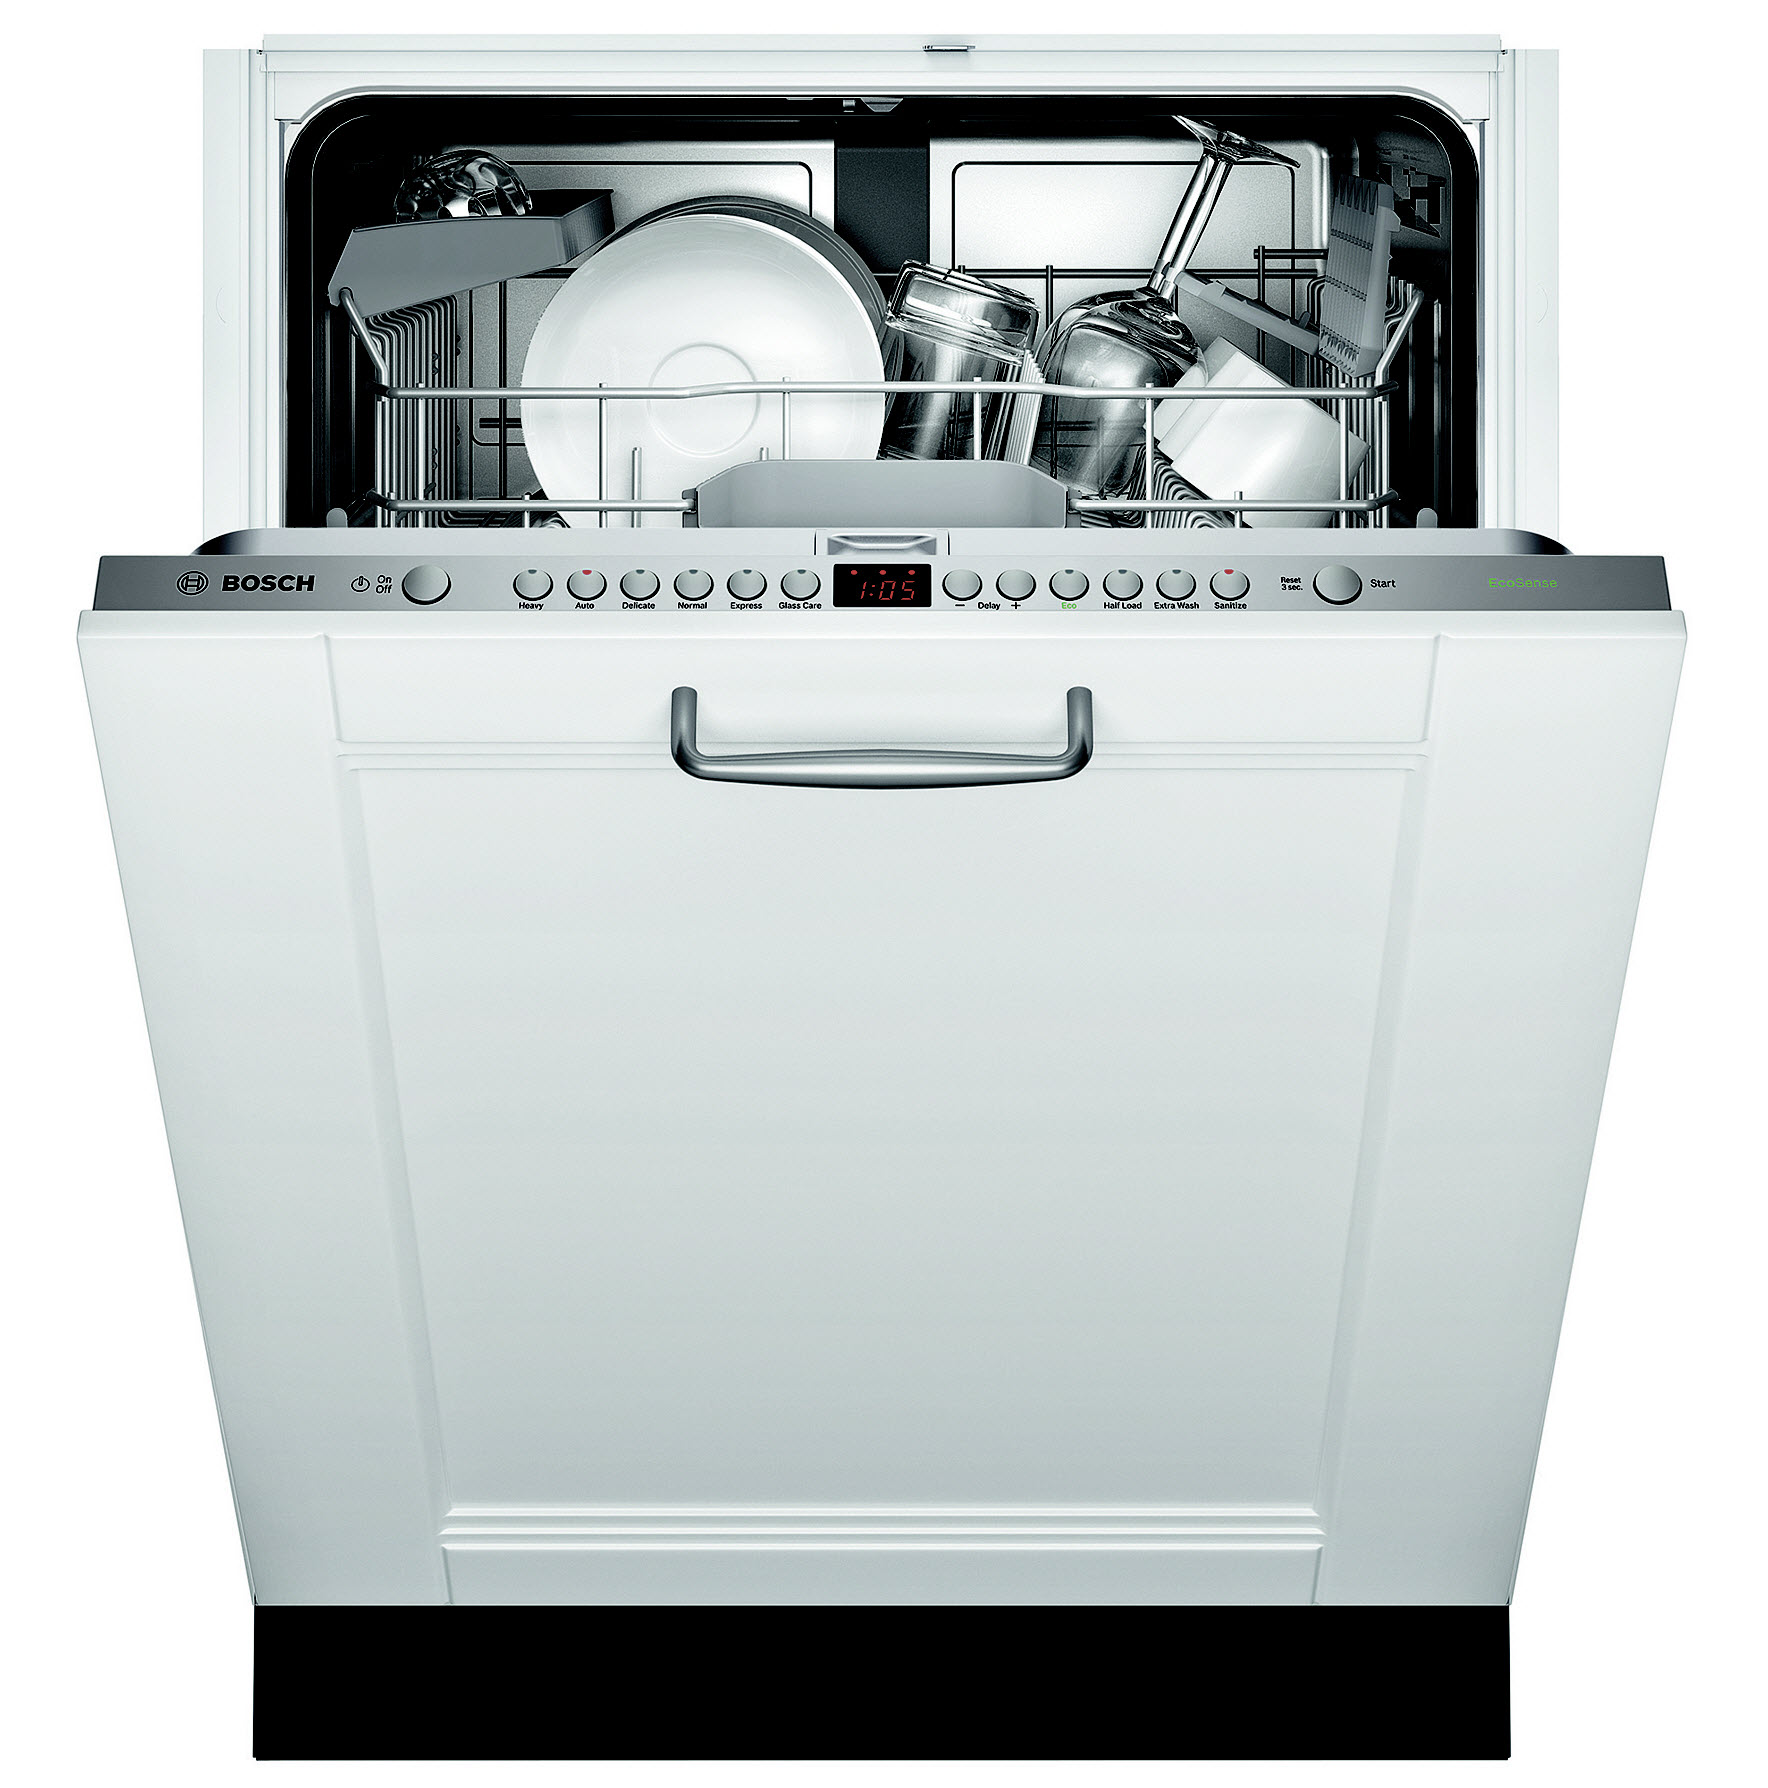 "Bosch 24"" Built-in Dishwasher ADA-Compliant - Panel Ready"